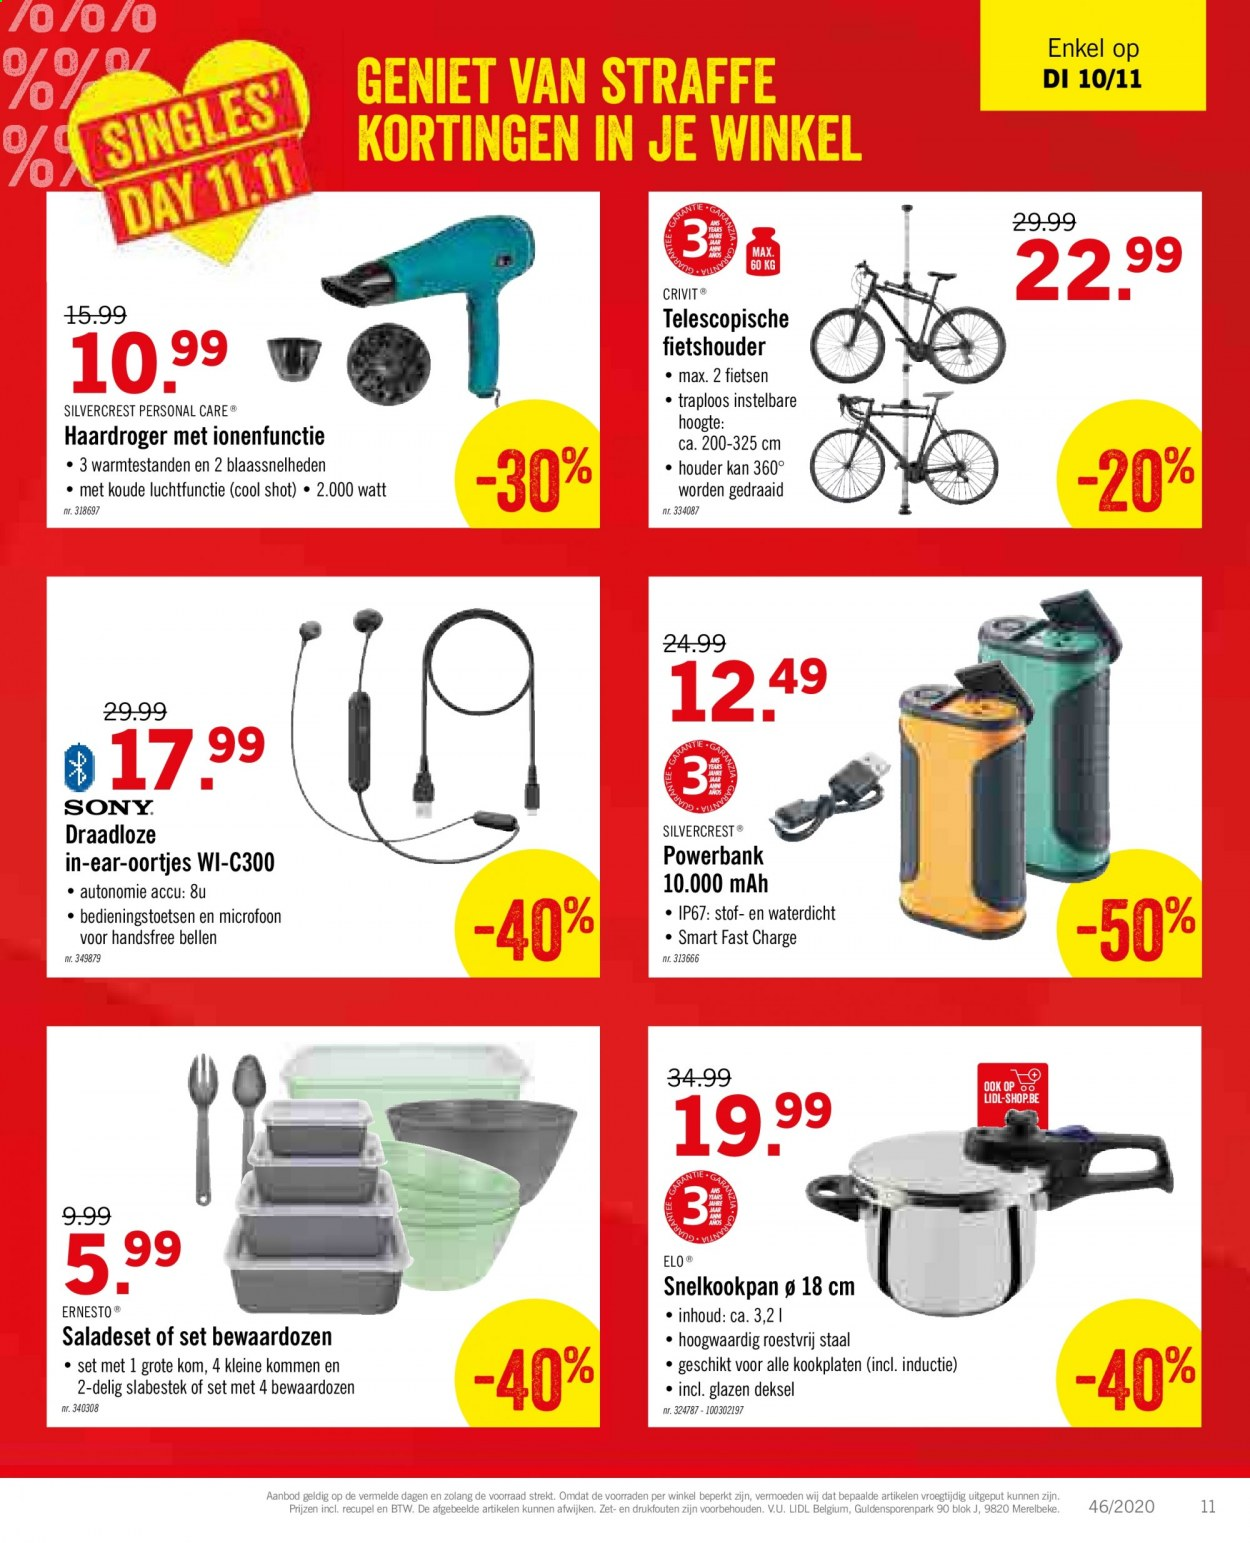 Catalogue Lidl - 9.11.2020 - 14.11.2020 - Produits soldés - powerbank, mah, silvercrest. Page 13.